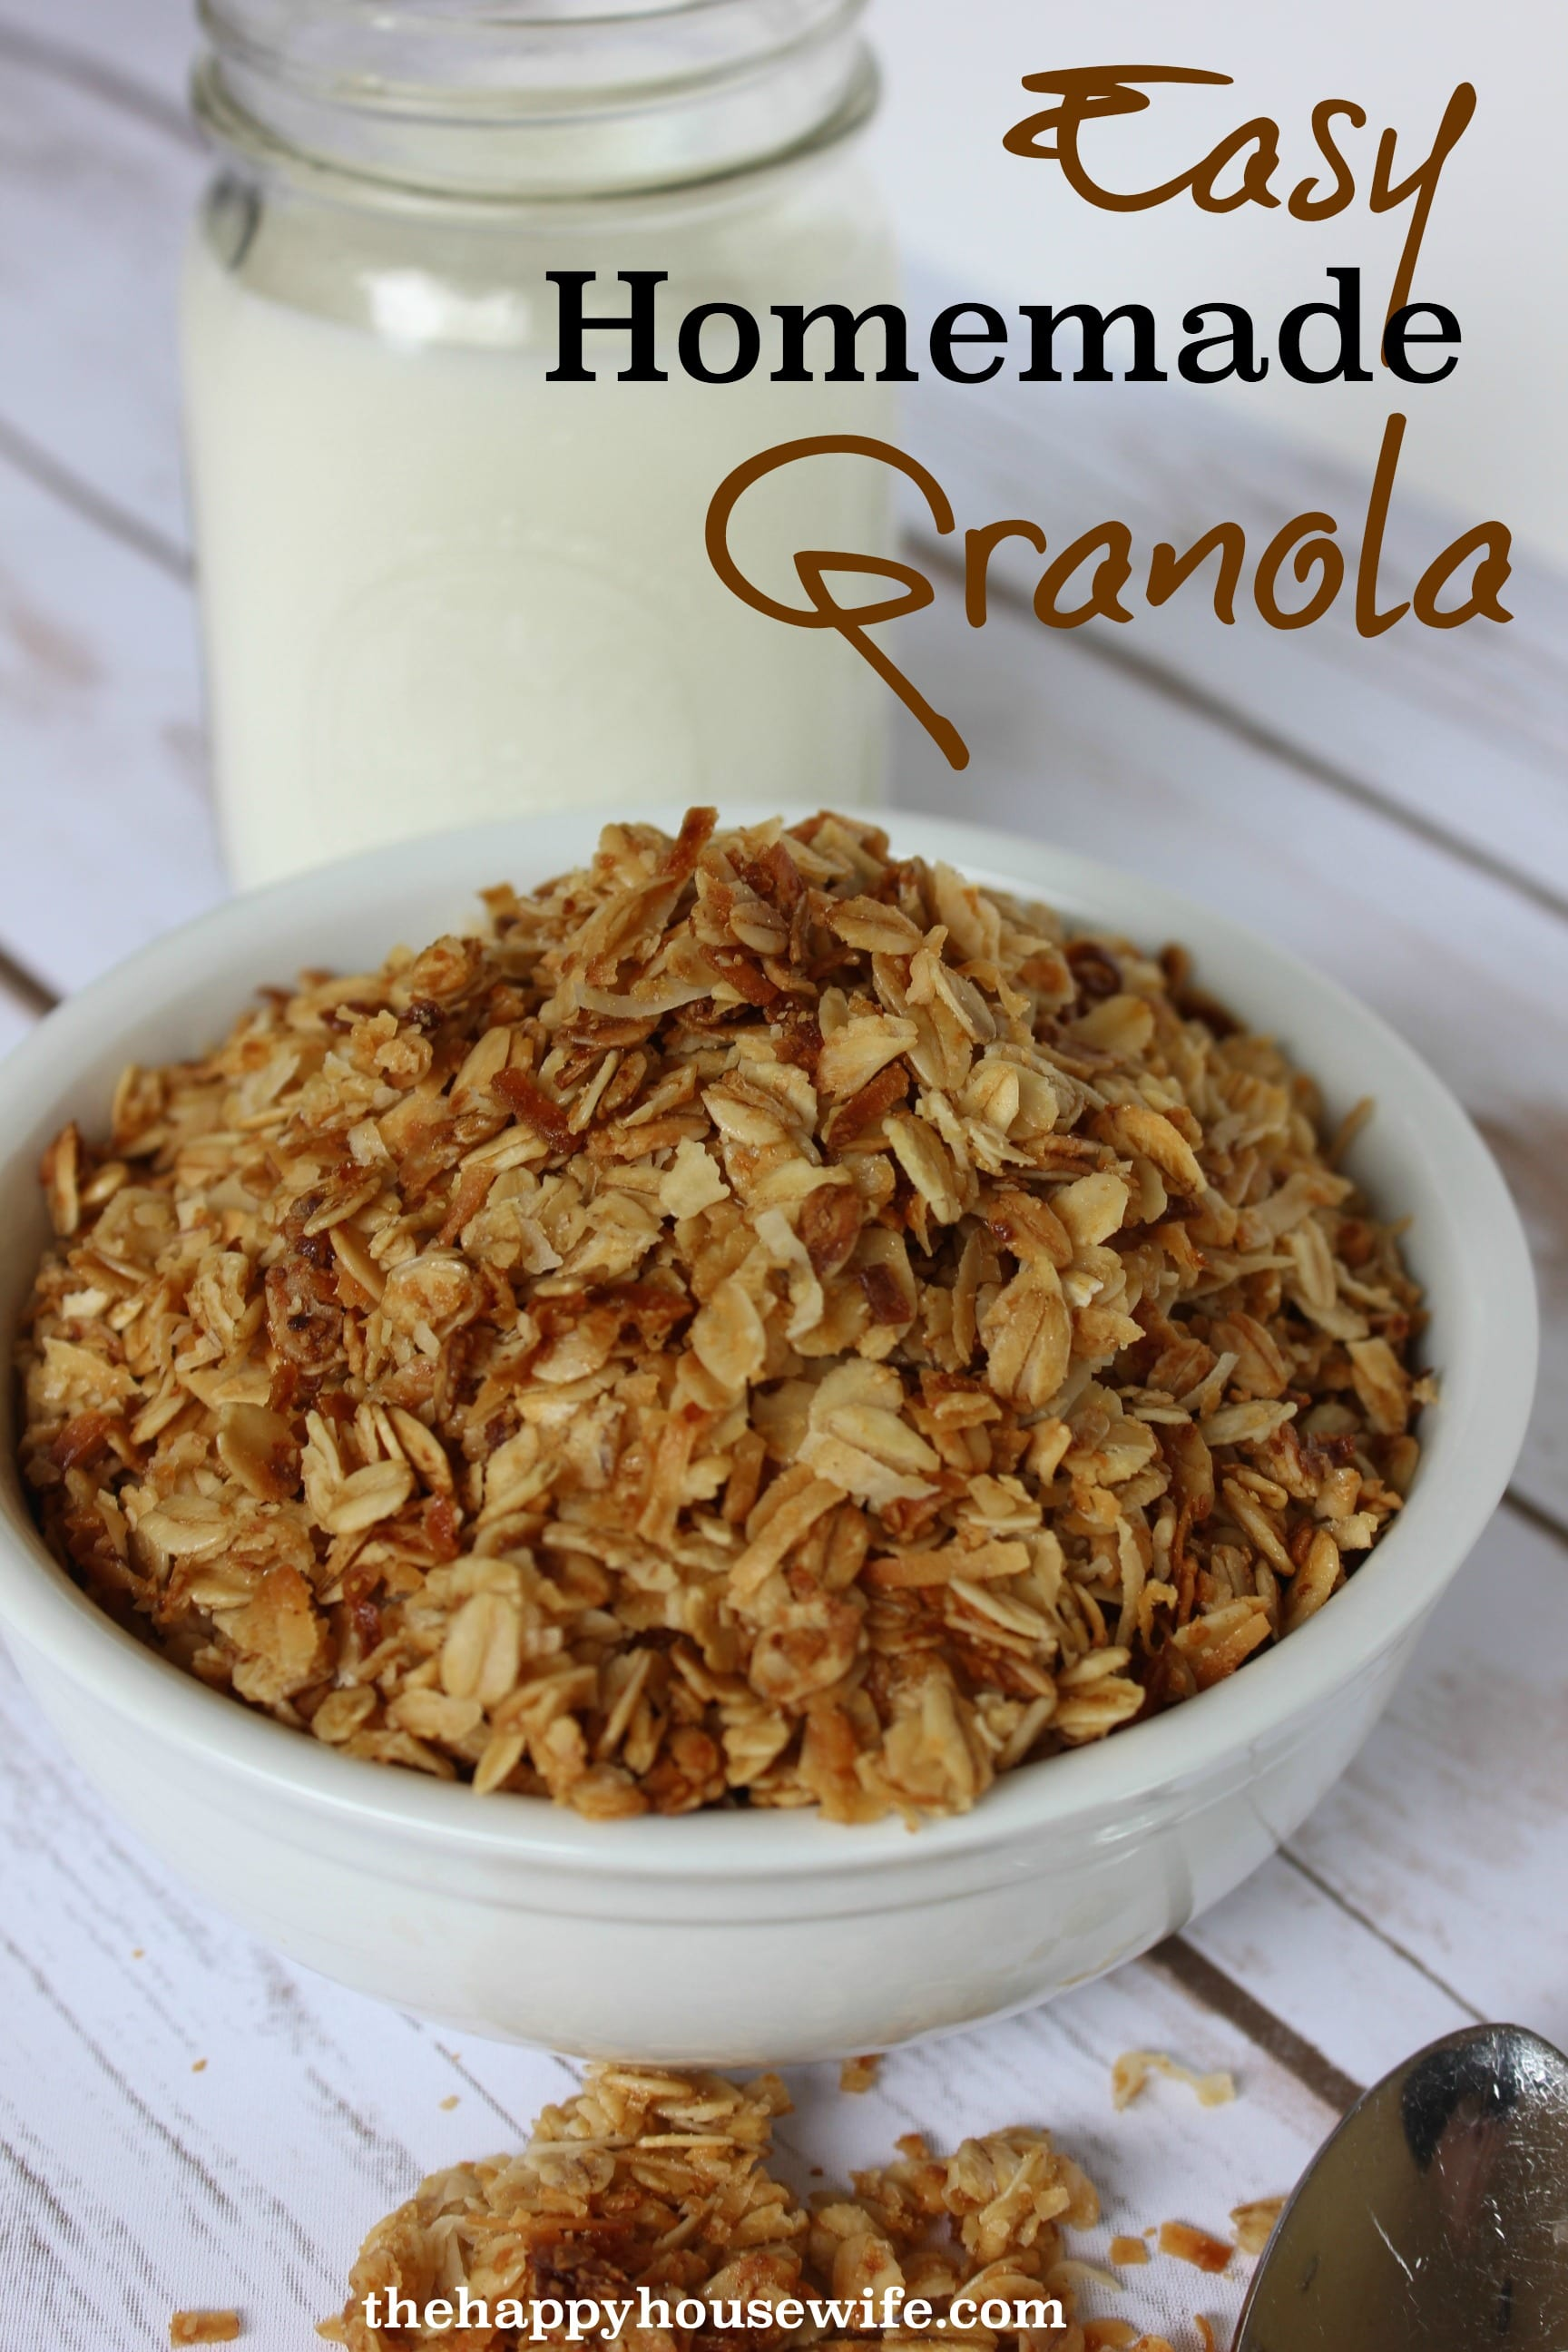 homemade granola homemade granola easy homemade granola homemade